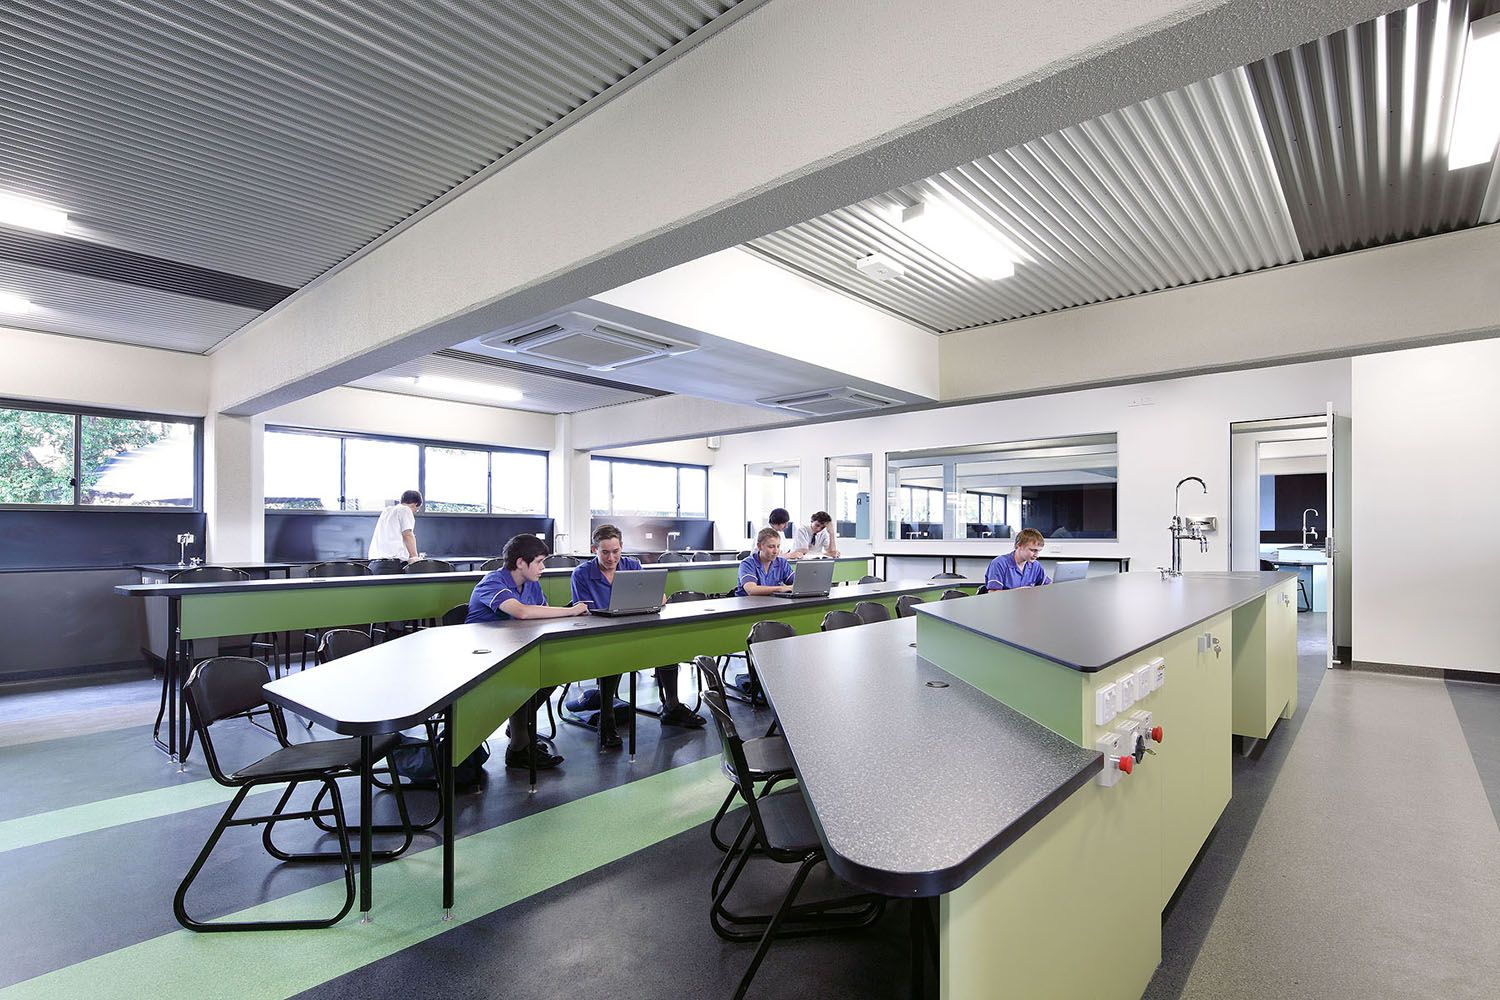 Modern Classroom Design ~ St edmund s college science block architecture